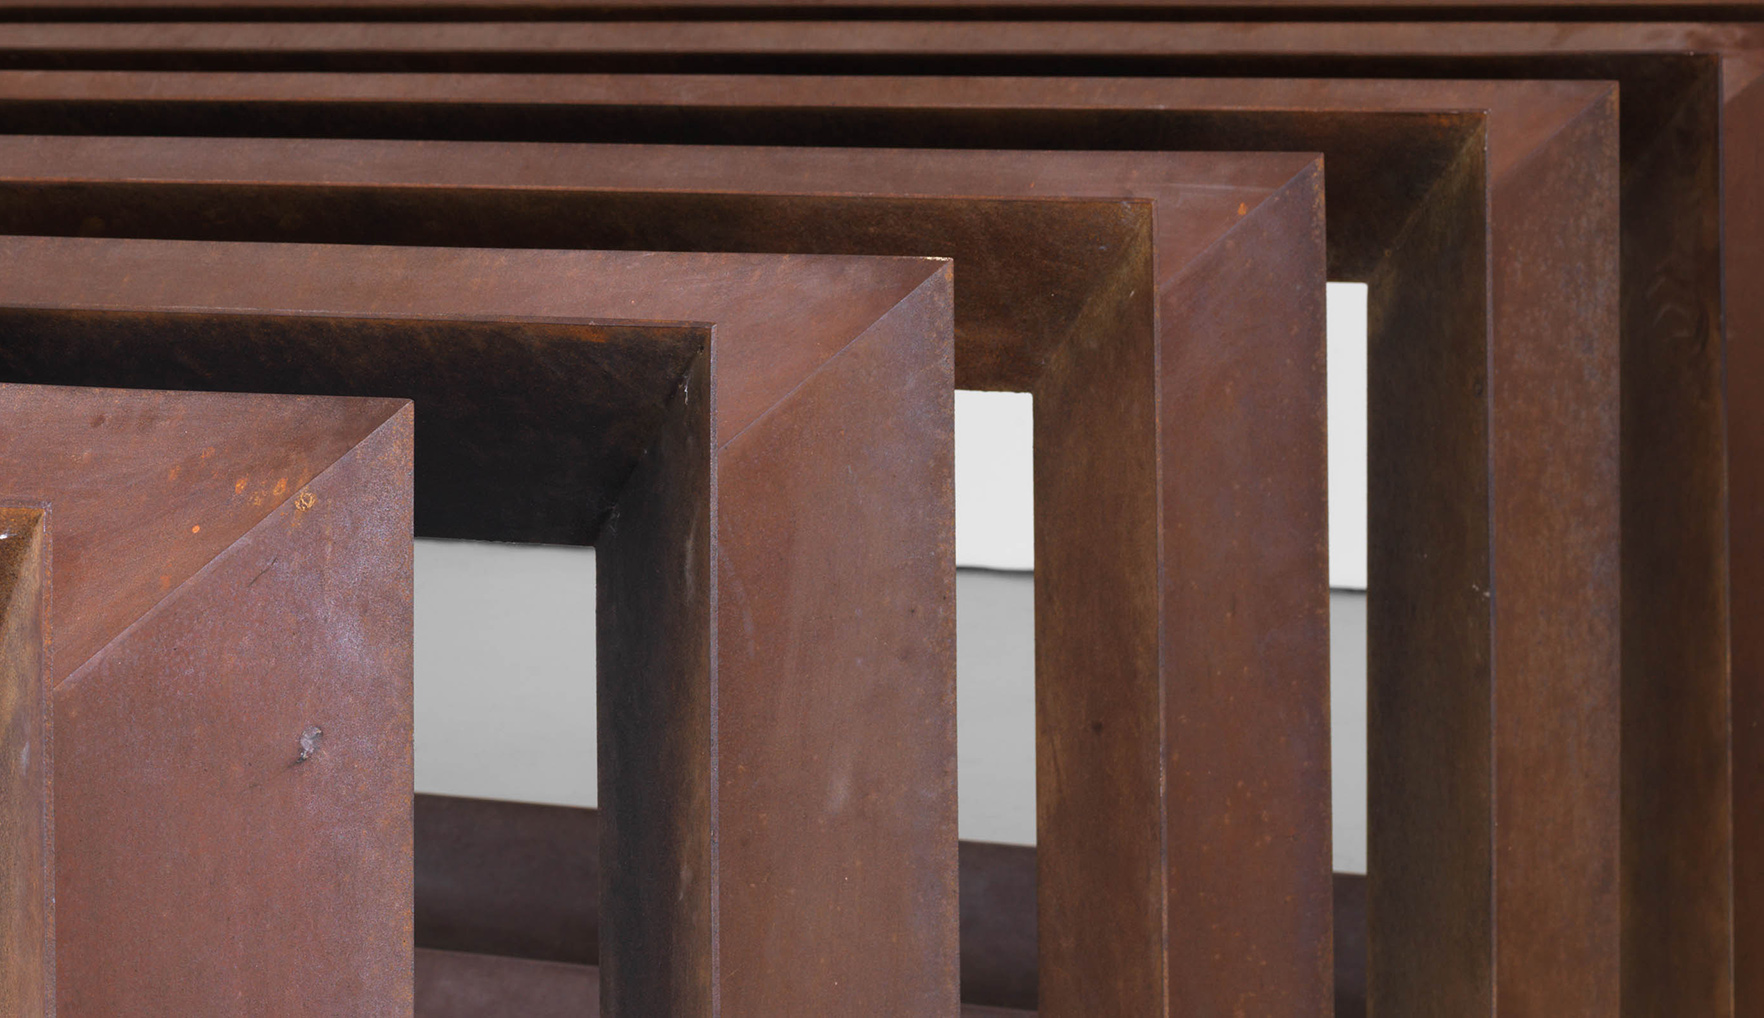 A detail from an untitled artwork by Donald Judd, dated 1979.